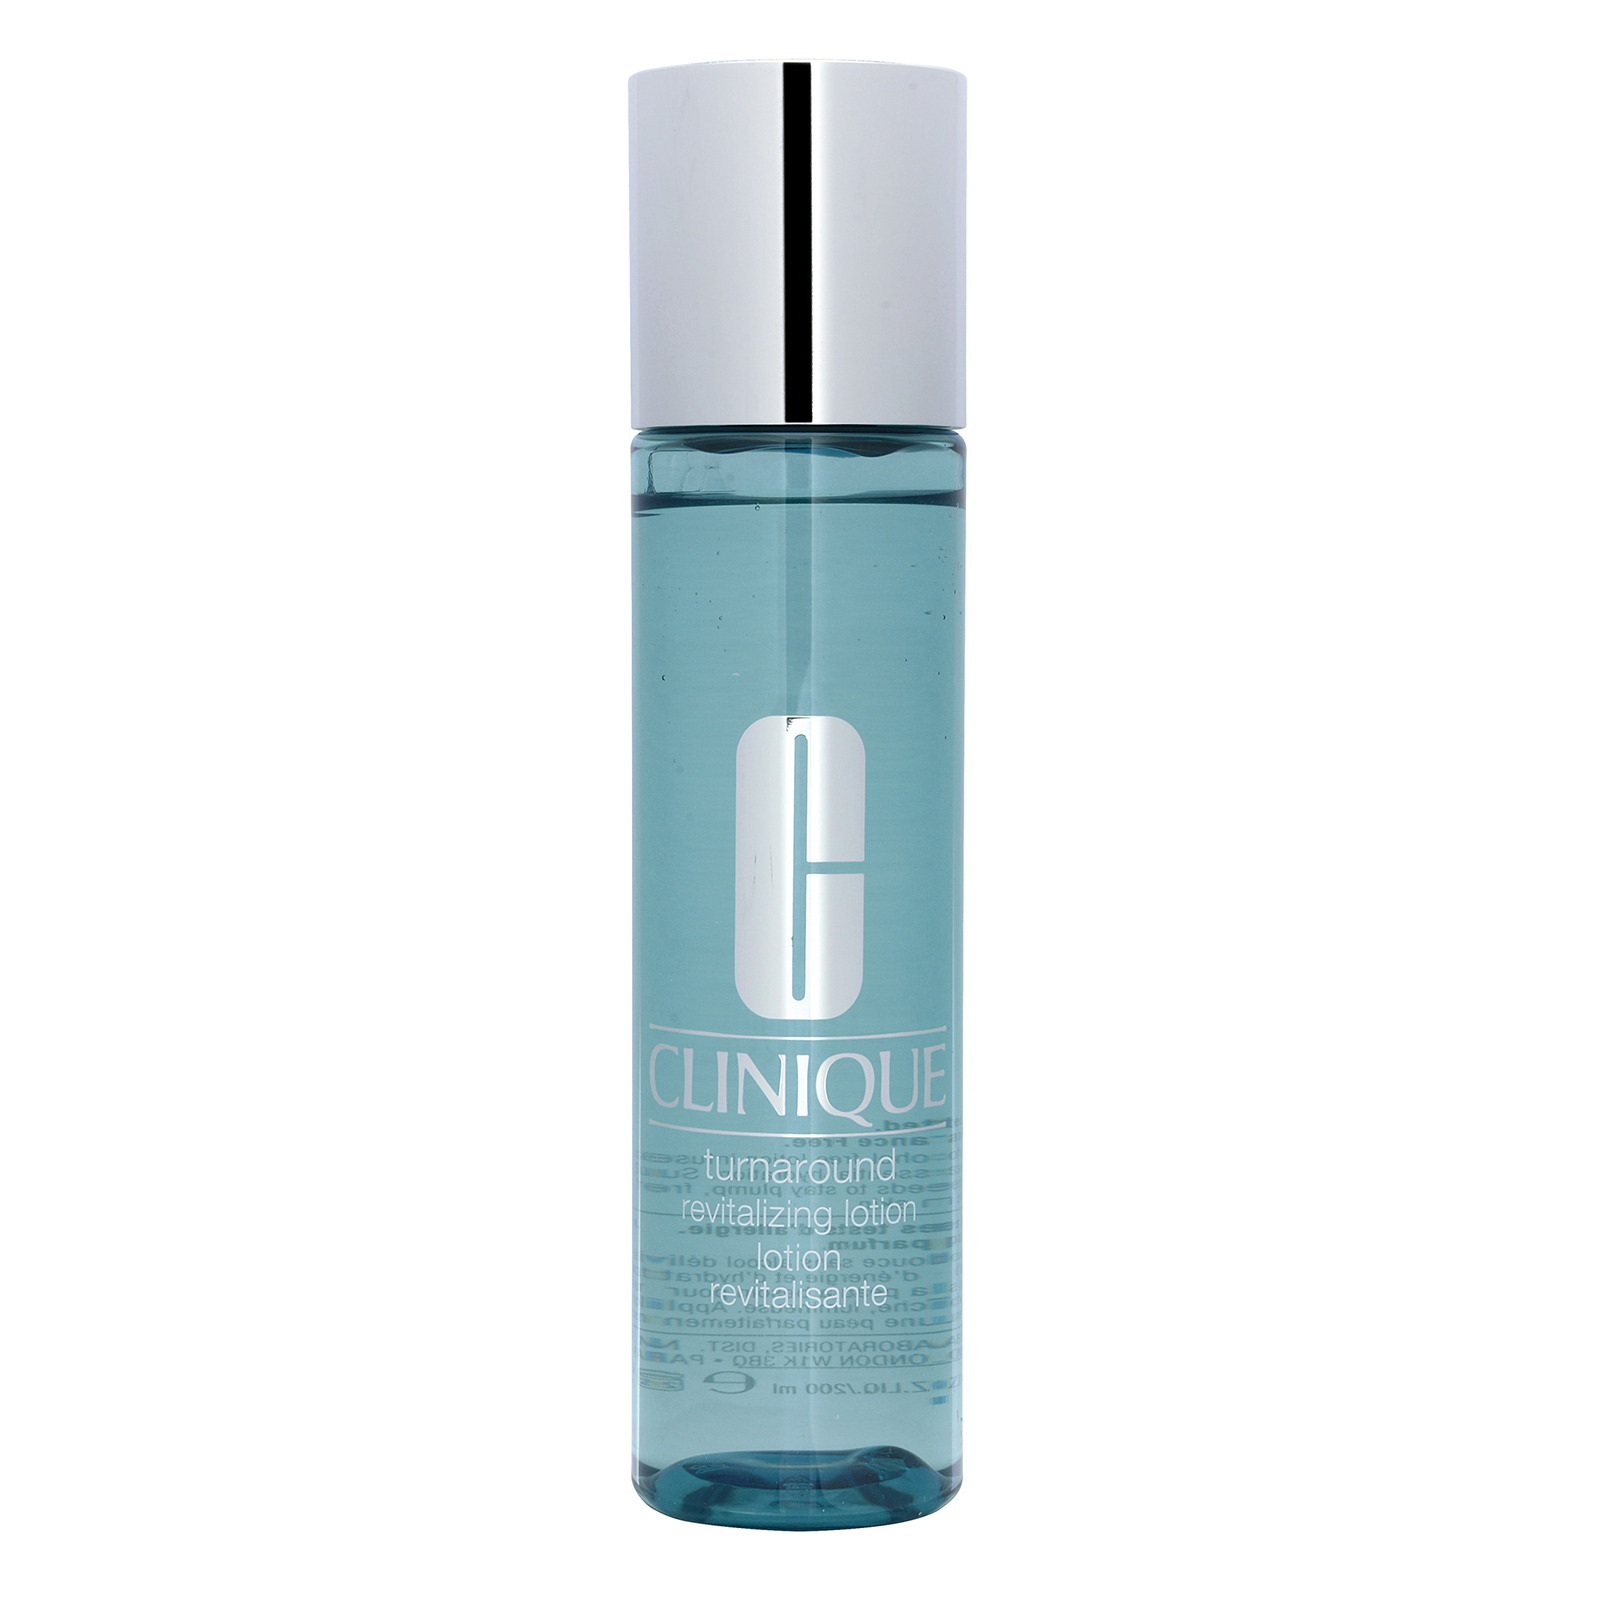 Clinique Turnaround Revitalizing Lotion (All Skin Types) 6.7oz, 200ml from Cosme-De.com